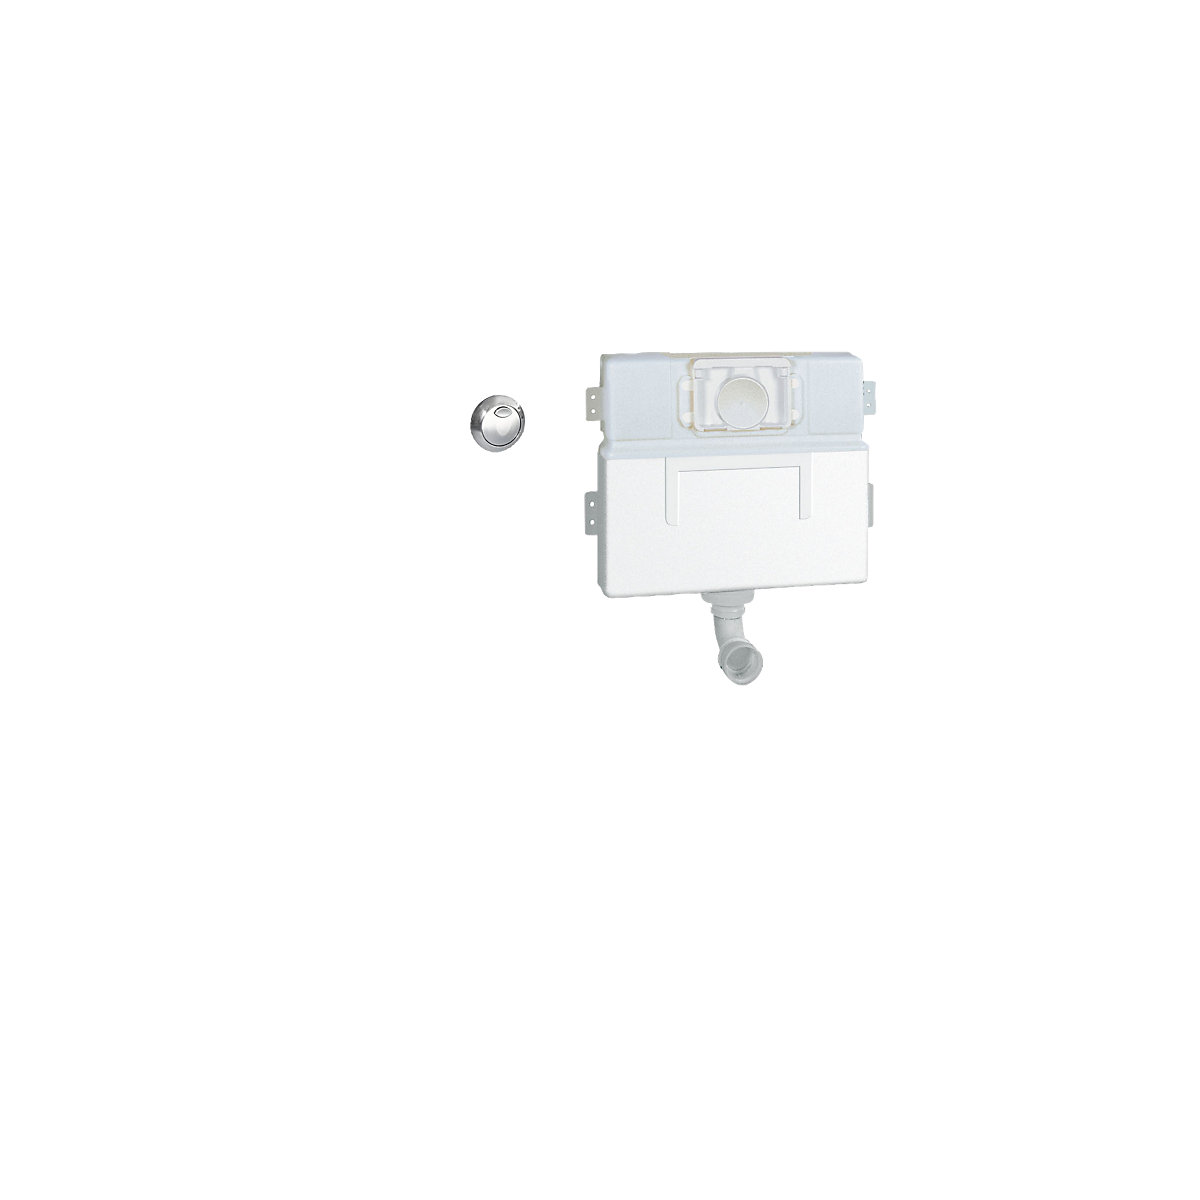 Grohe dual flush eau2 concealed cistern air button 38691000 grohe dual flush eau2 concealed cistern air button 38691000 pooptronica Image collections